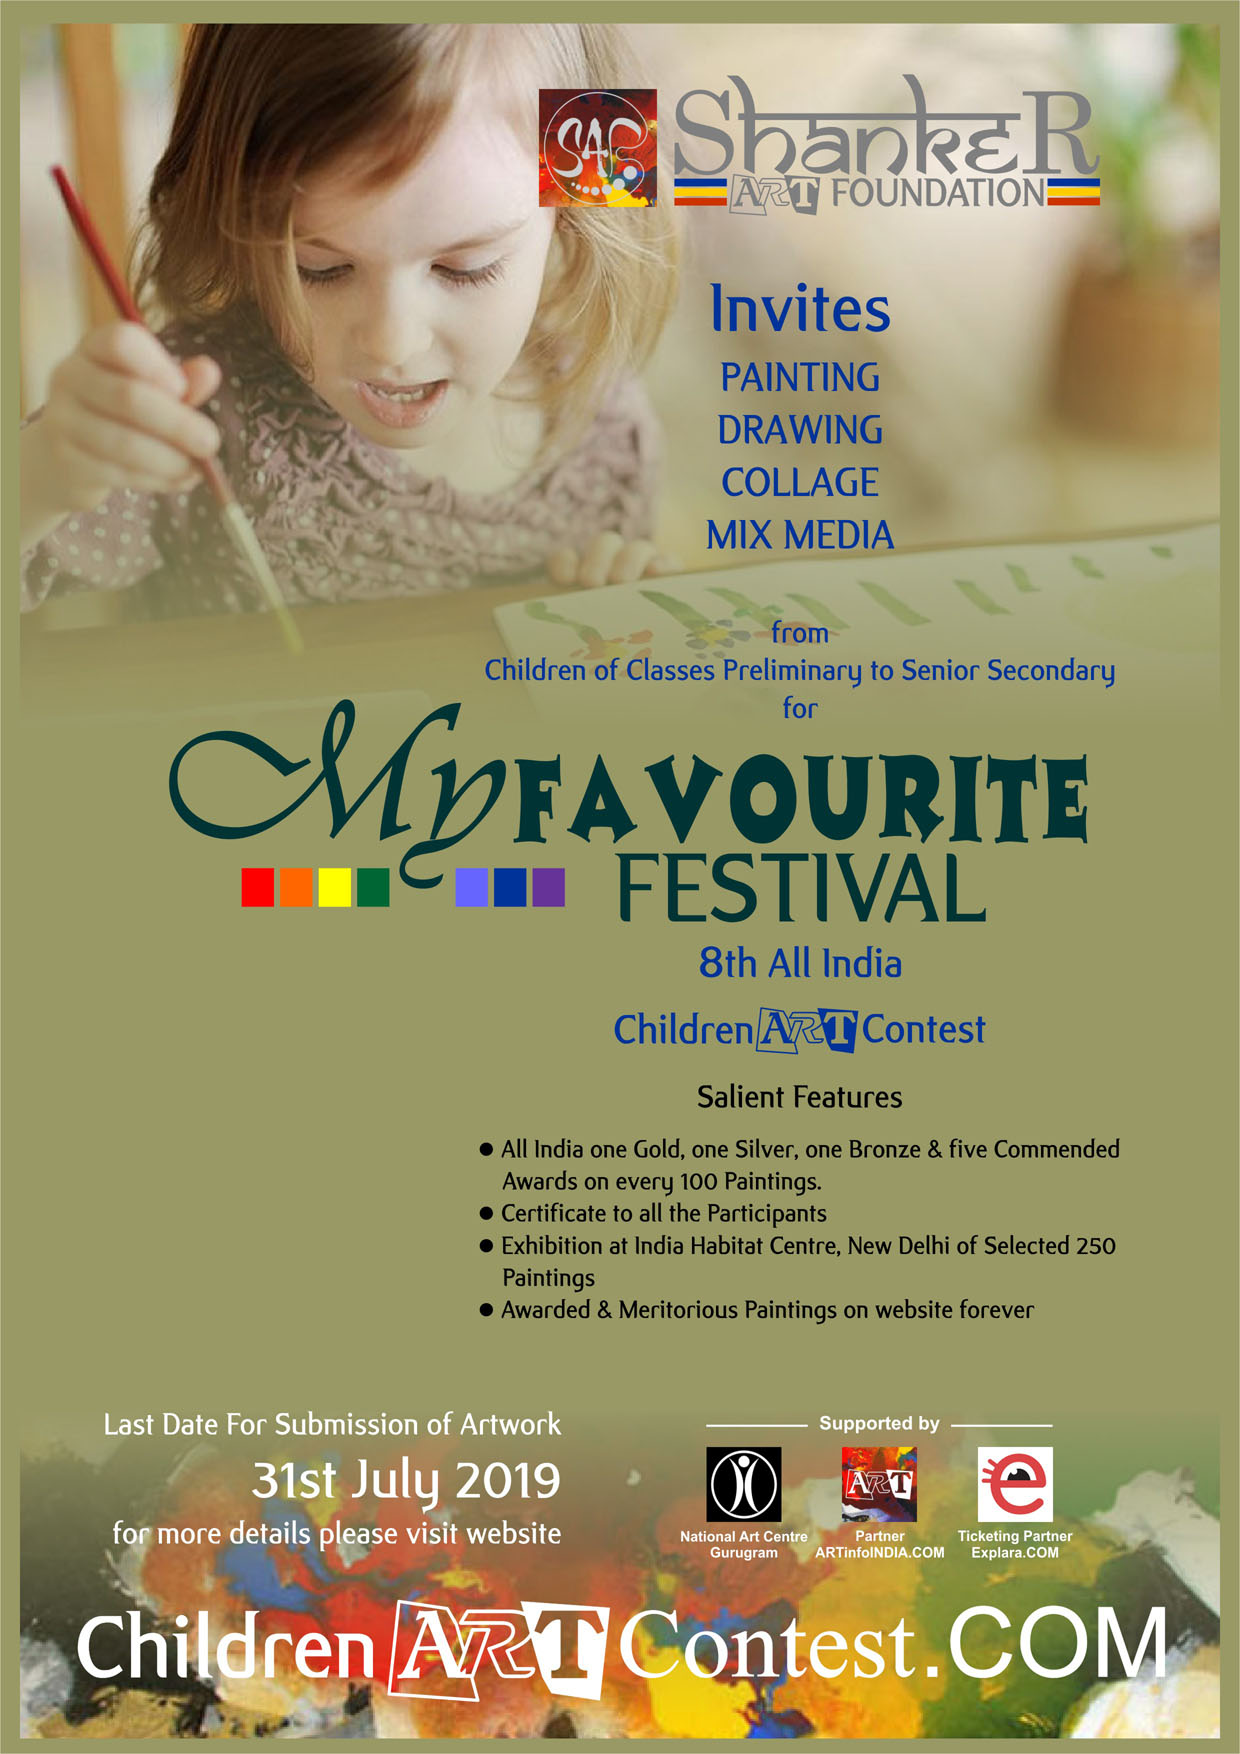 My Fevourite Festival Page 1